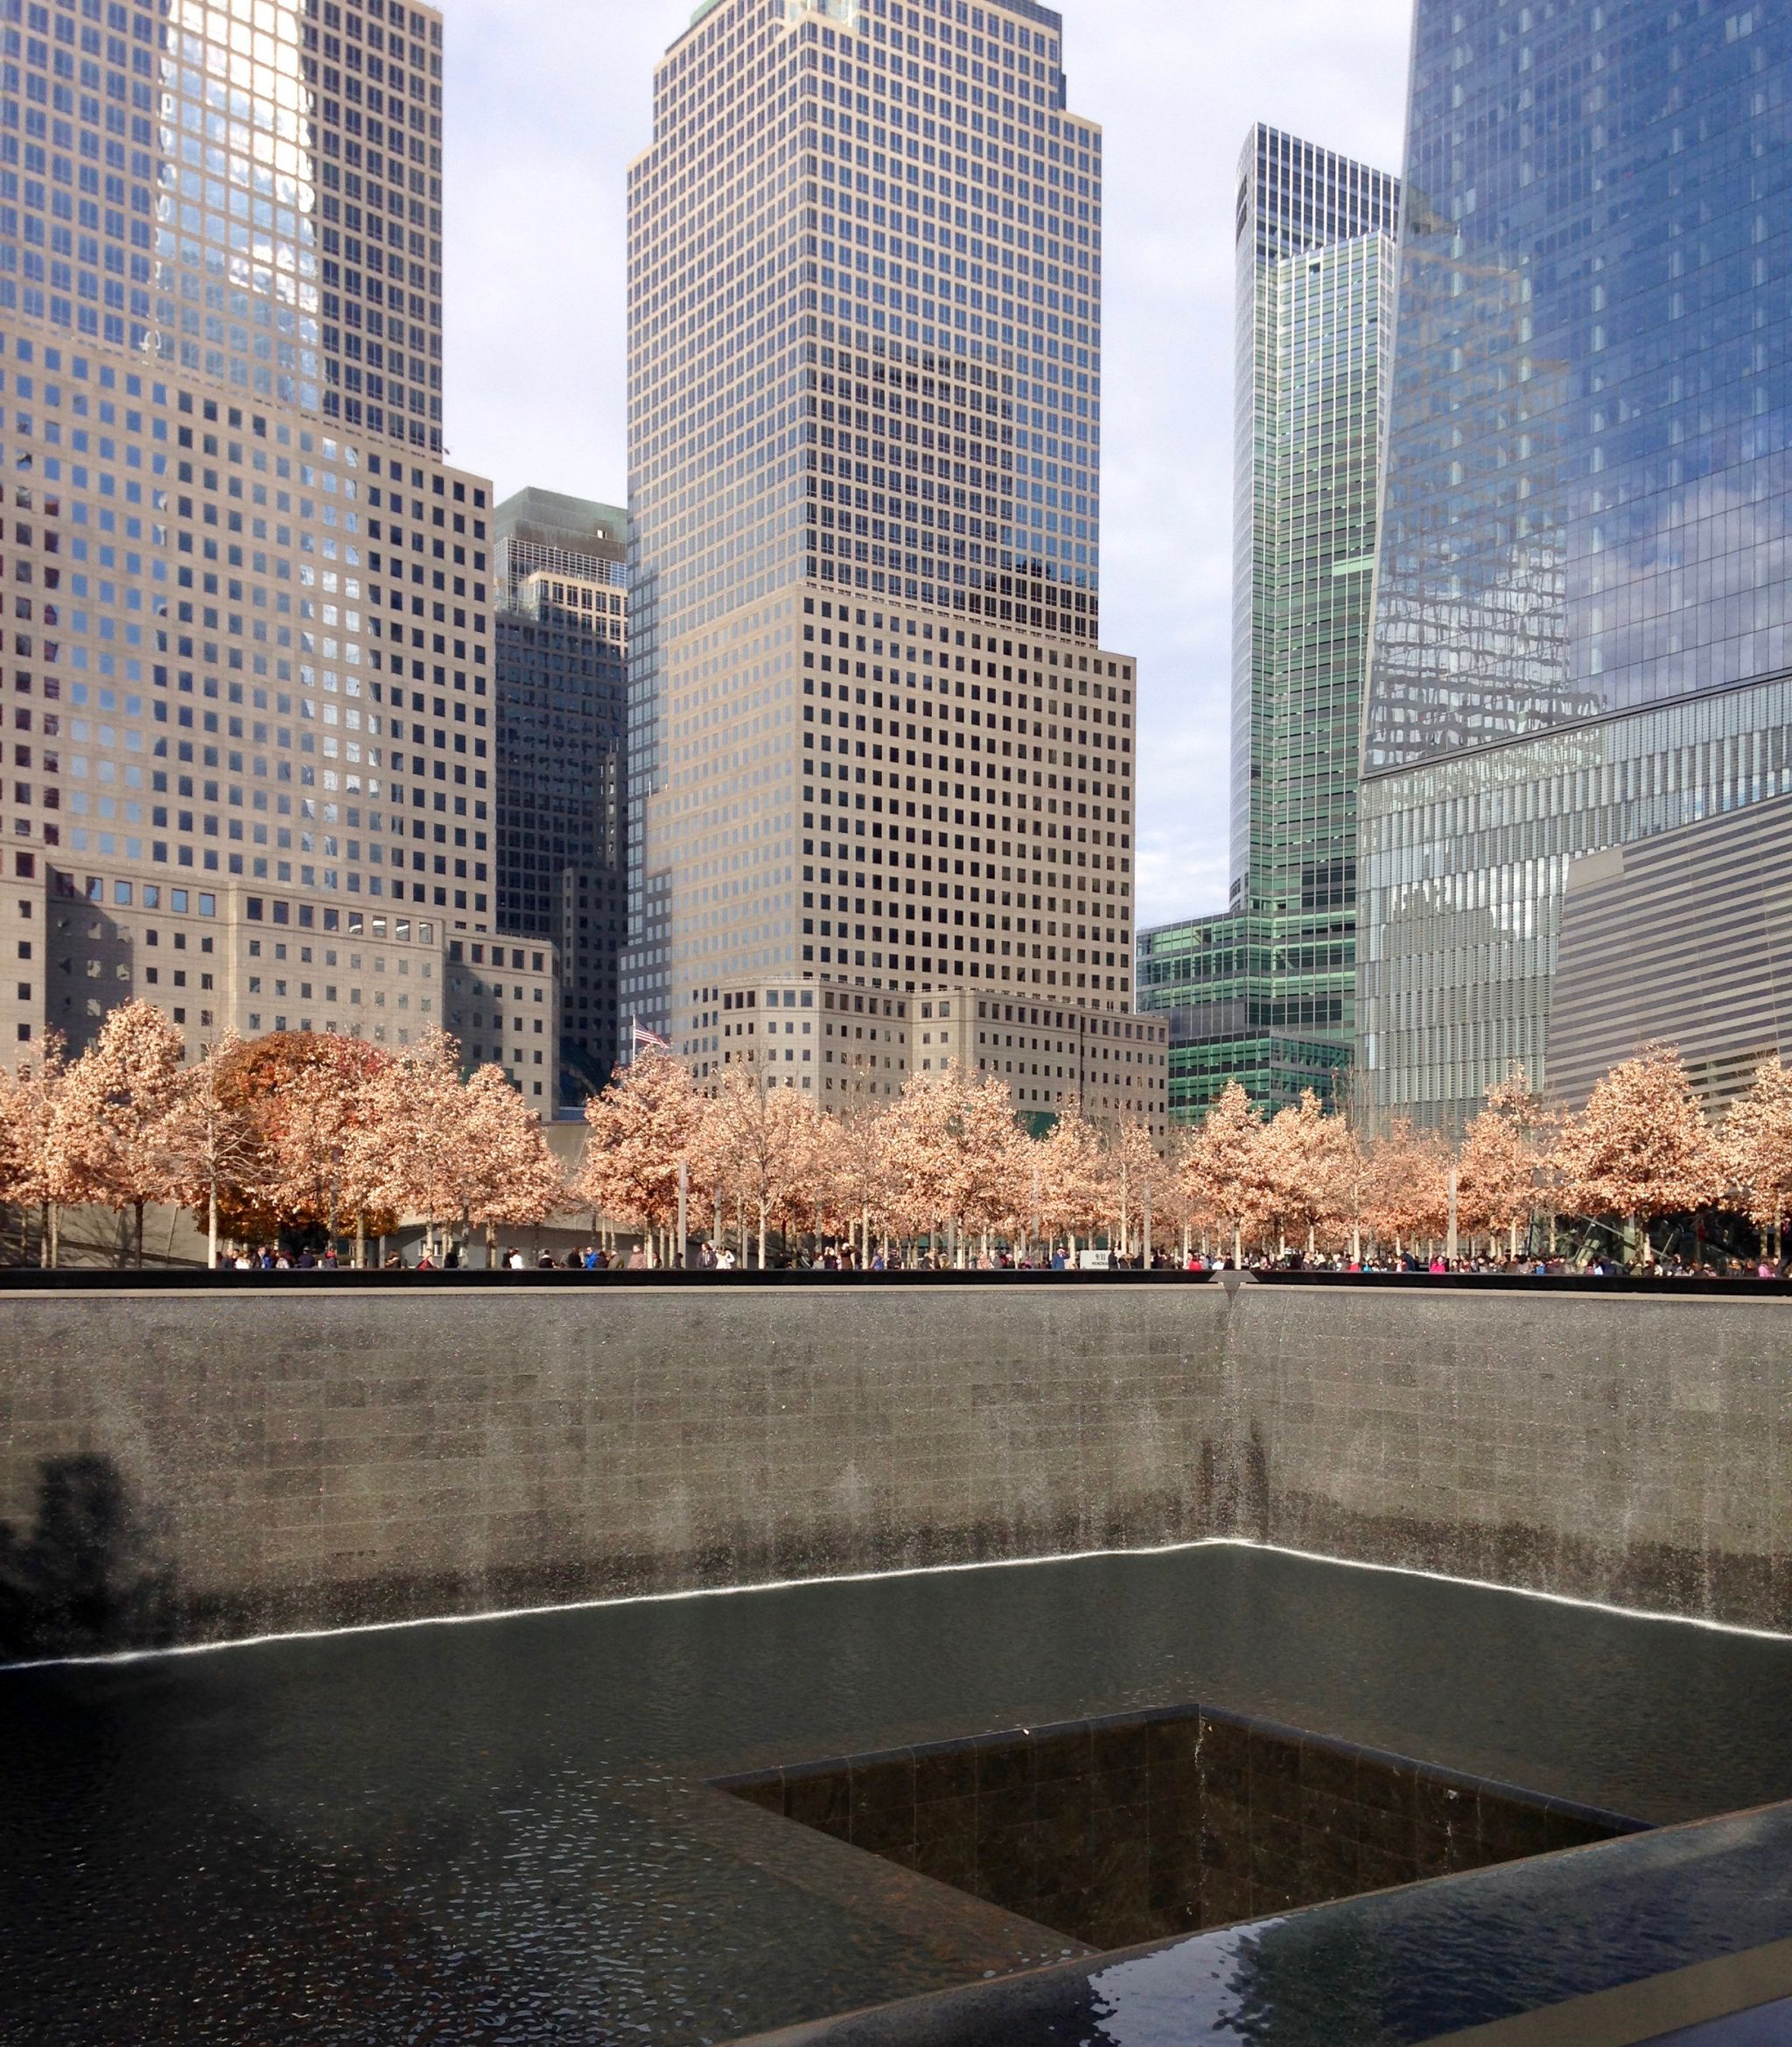 9/11 Memorial New York City